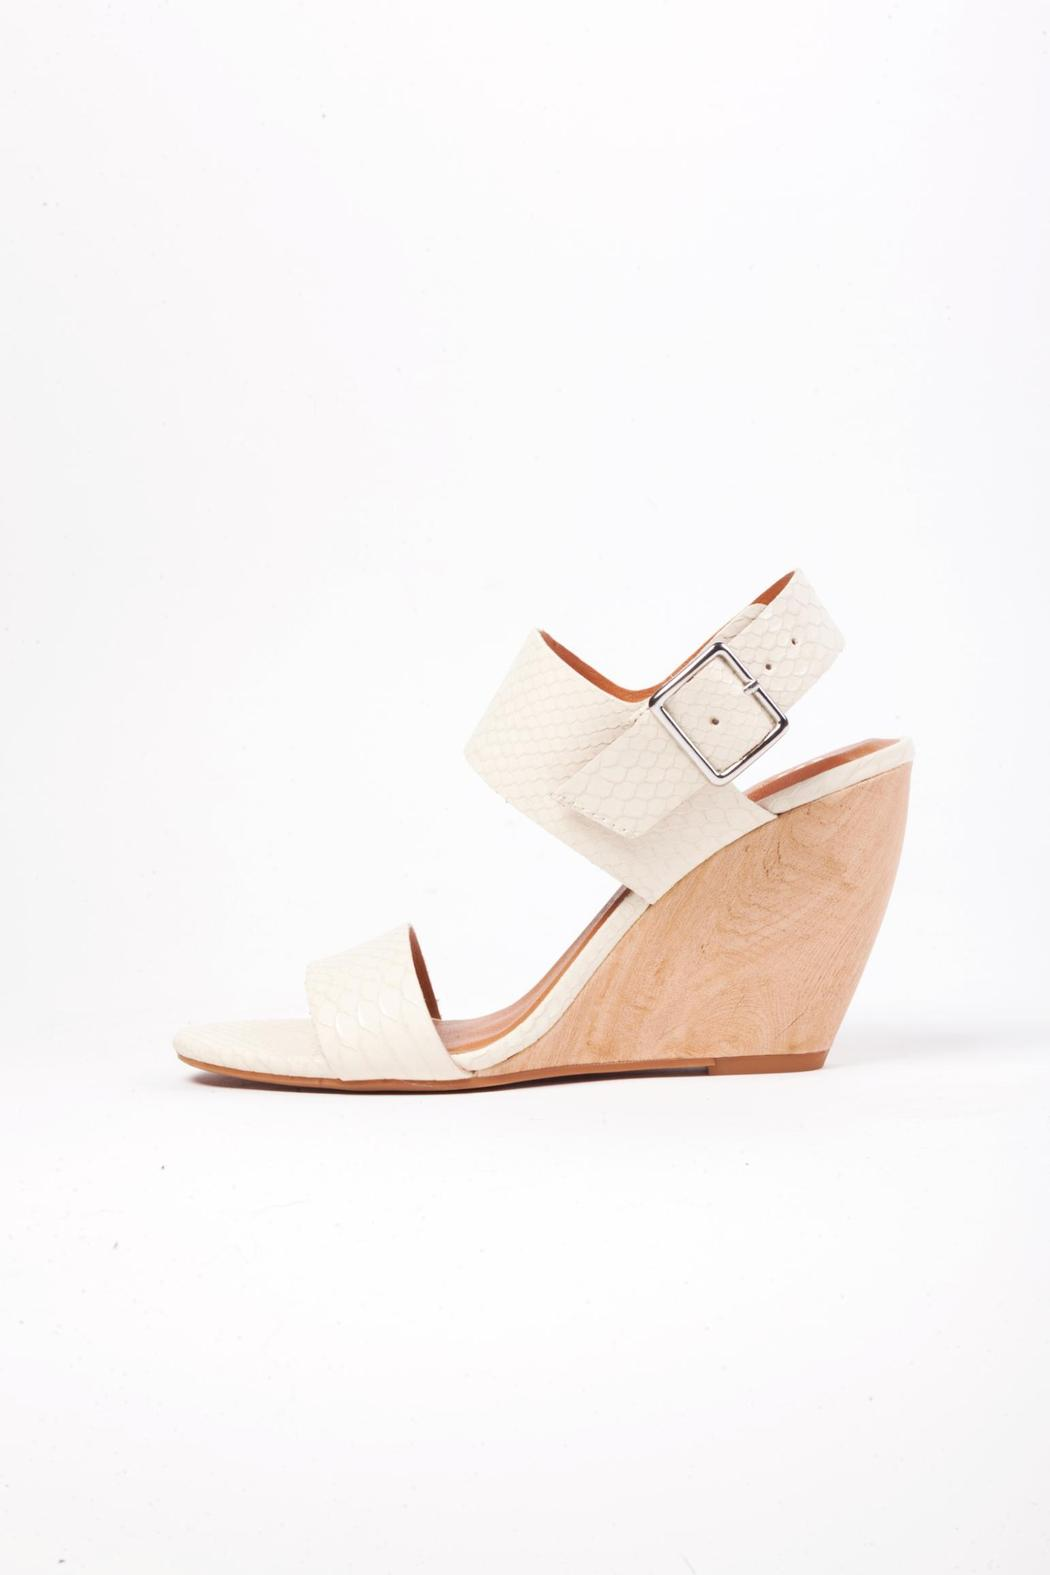 49f46ecfee1 BC Footwear Off-White Wedge Sandal from New Jersey by Wink Boutique ...